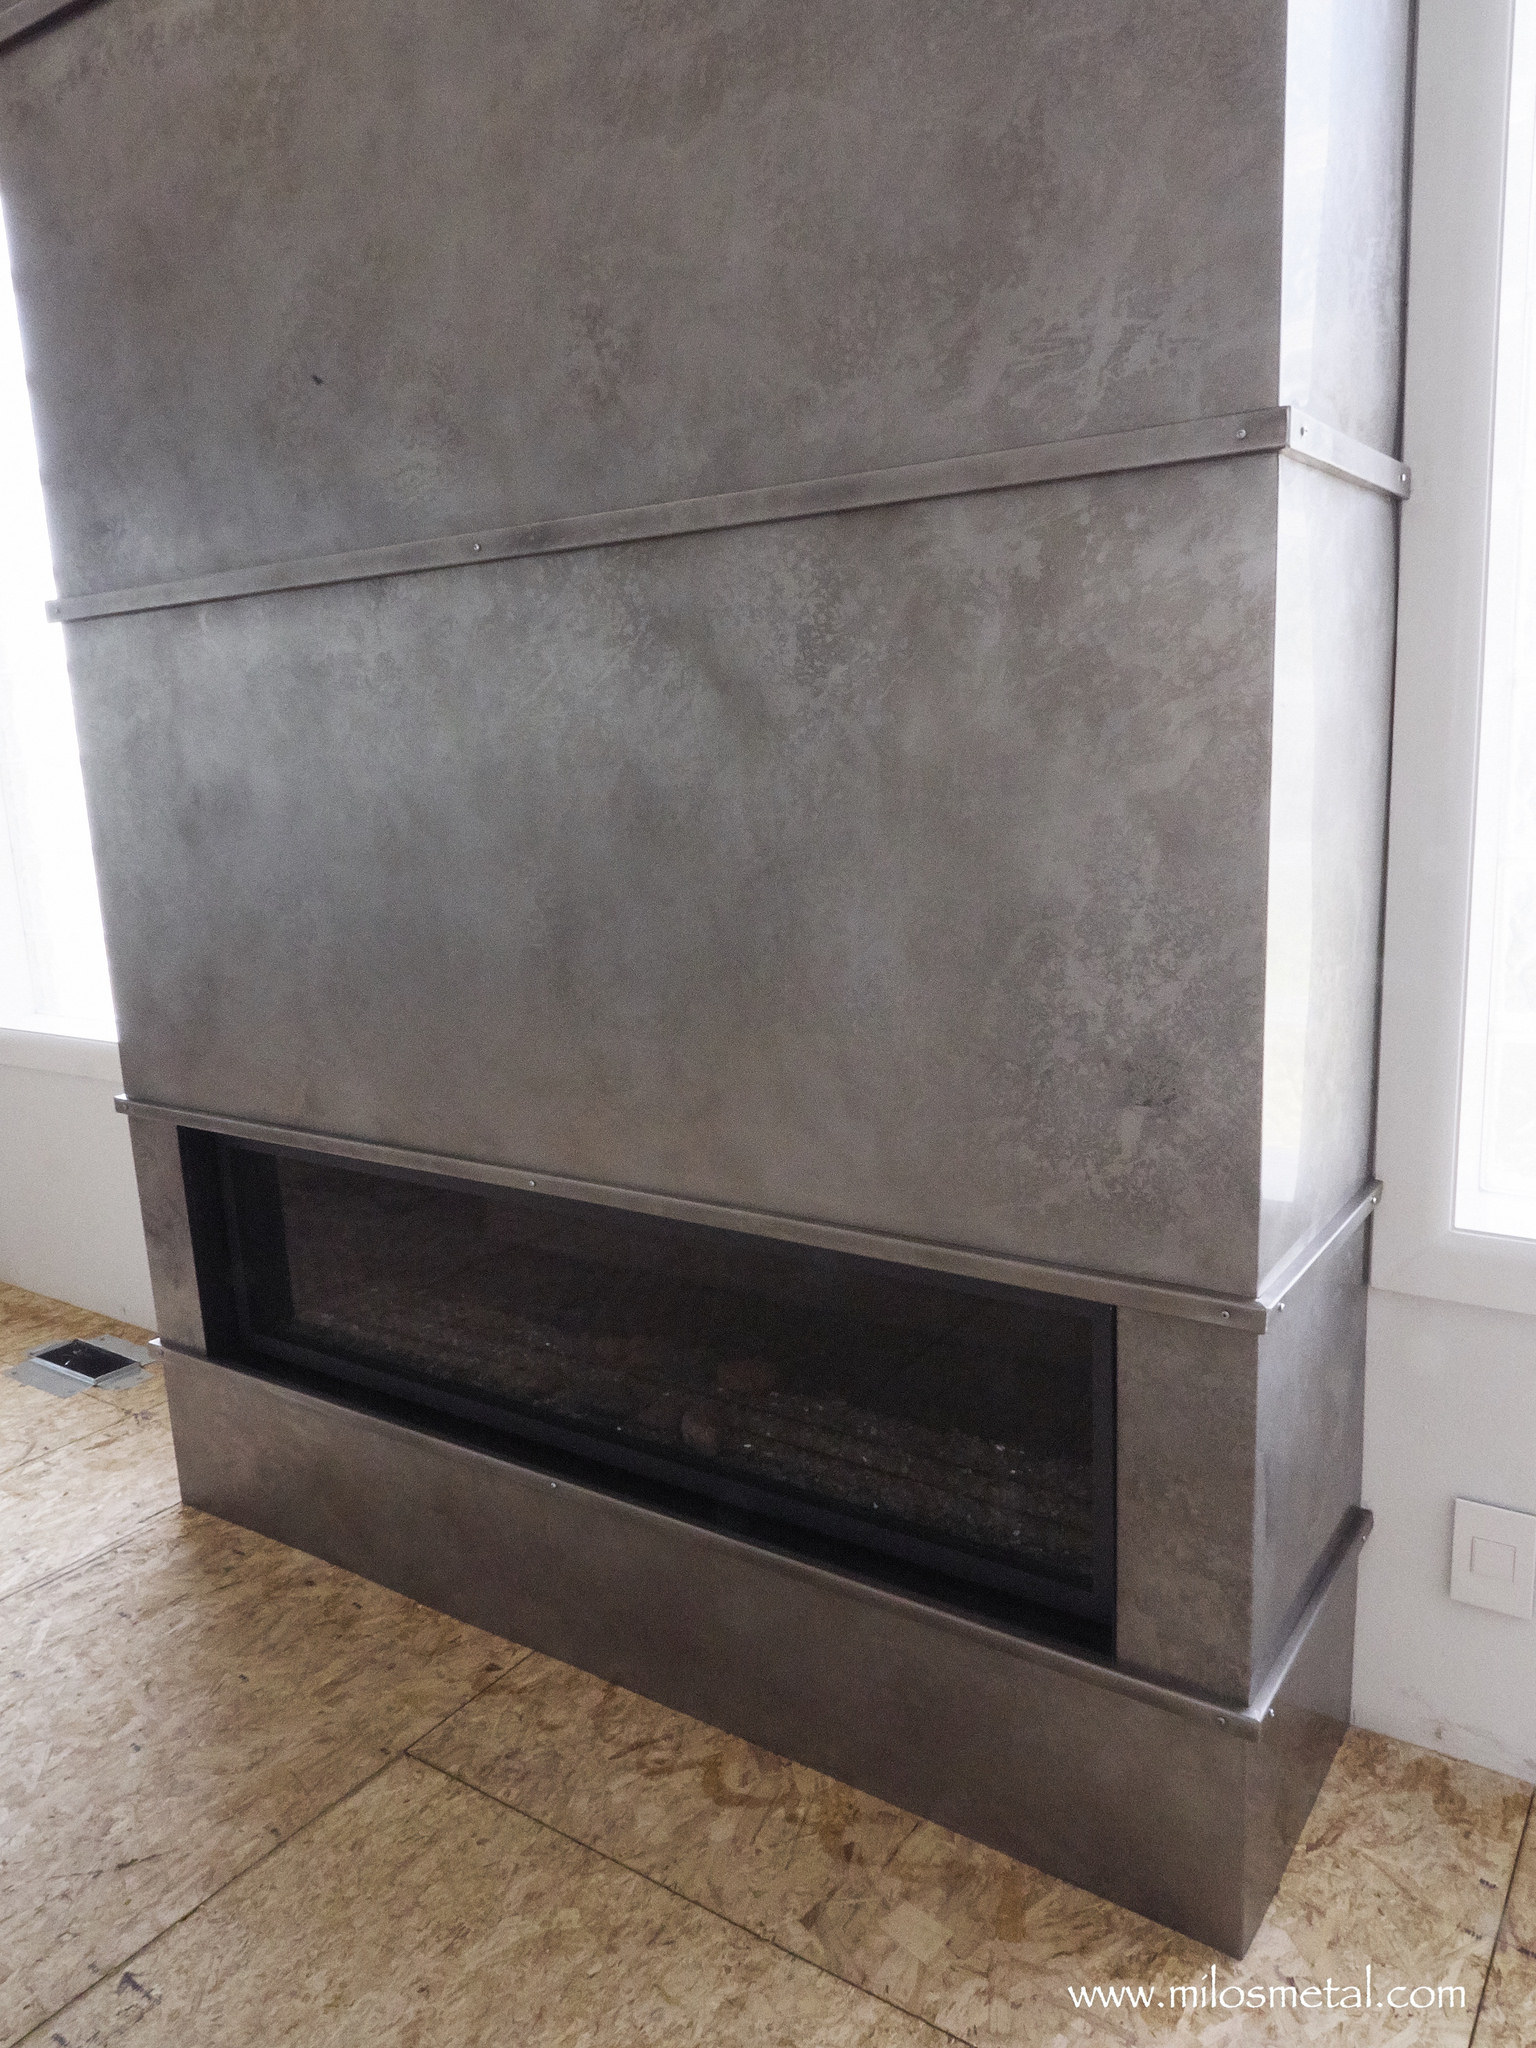 Volcanic Stainless Steel Fireplace Panels In Gray Ash Color